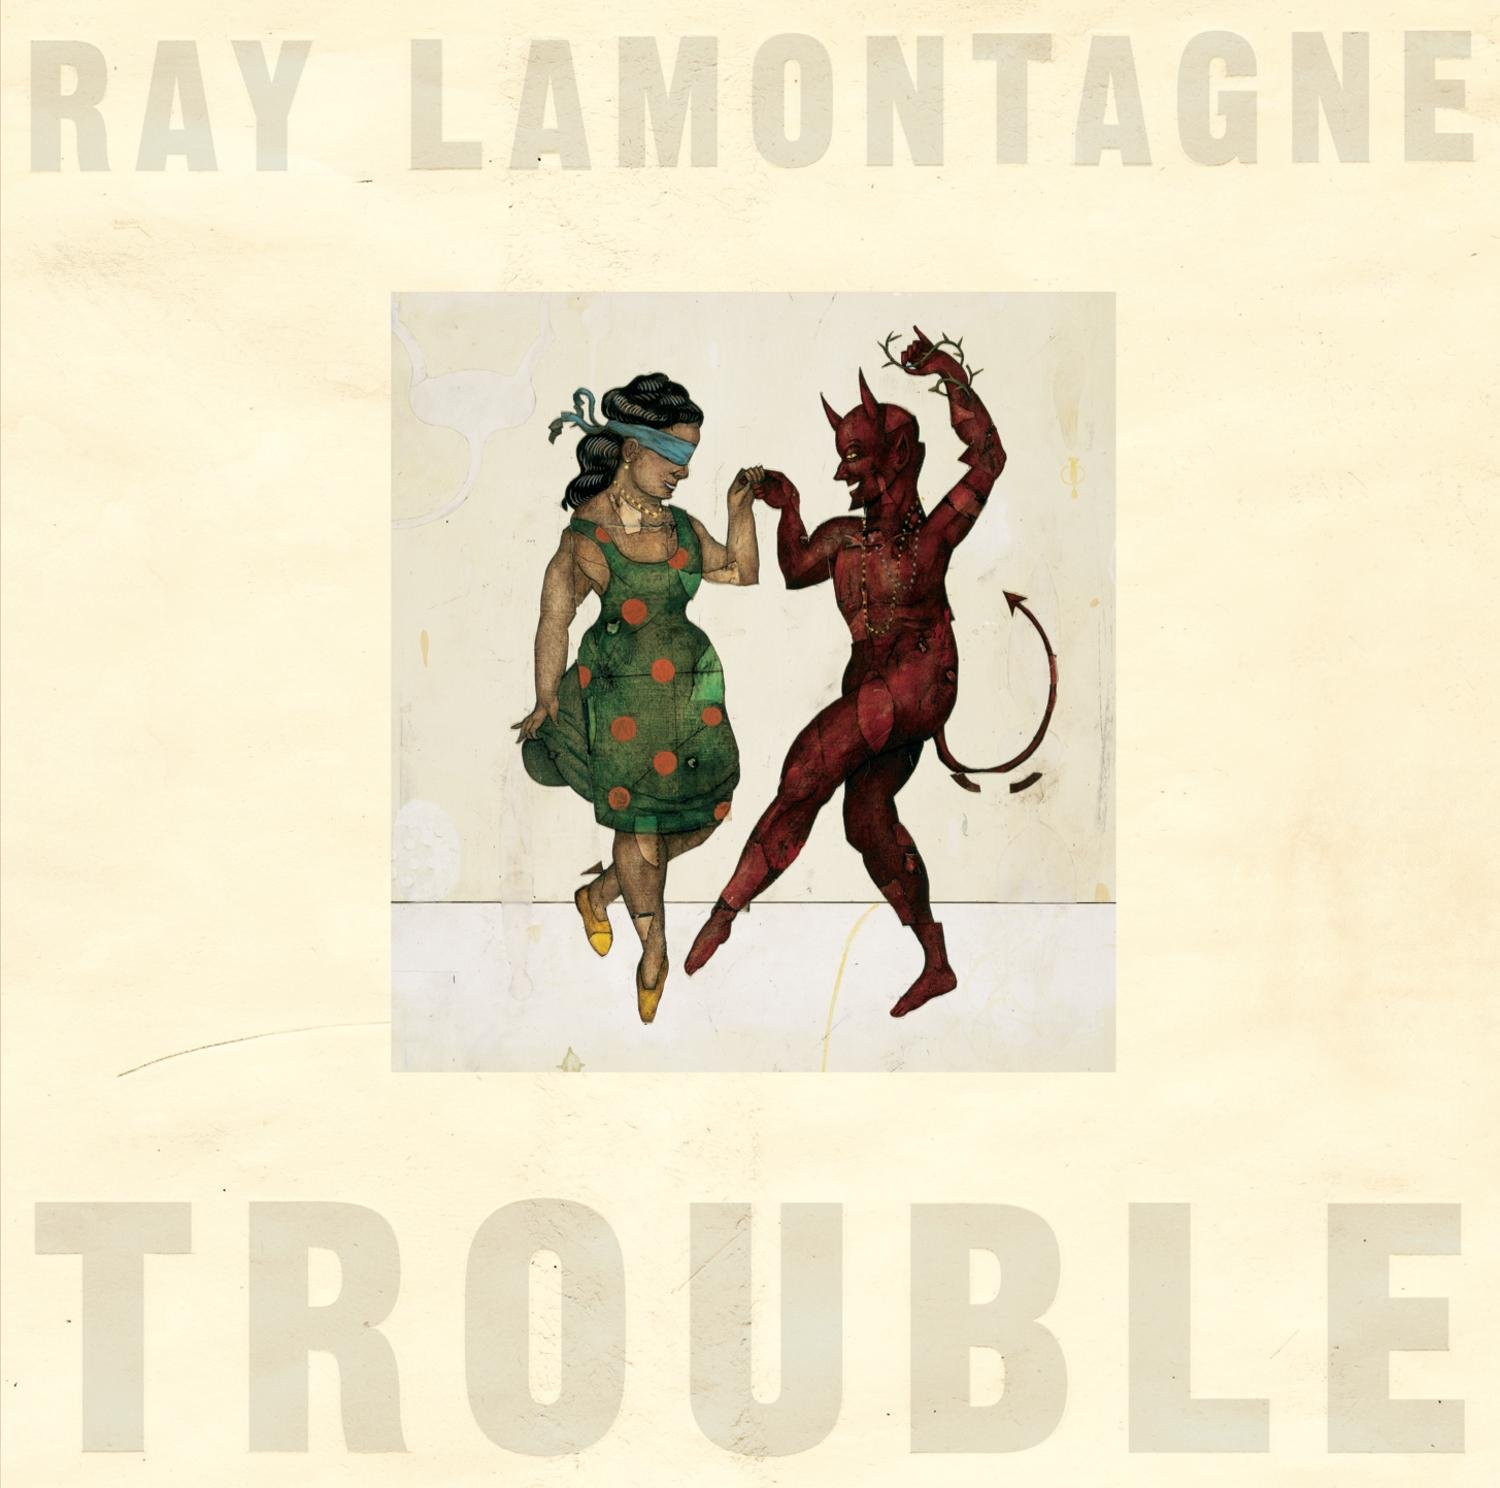 Trouble [Vinyl] by Sony Legacy